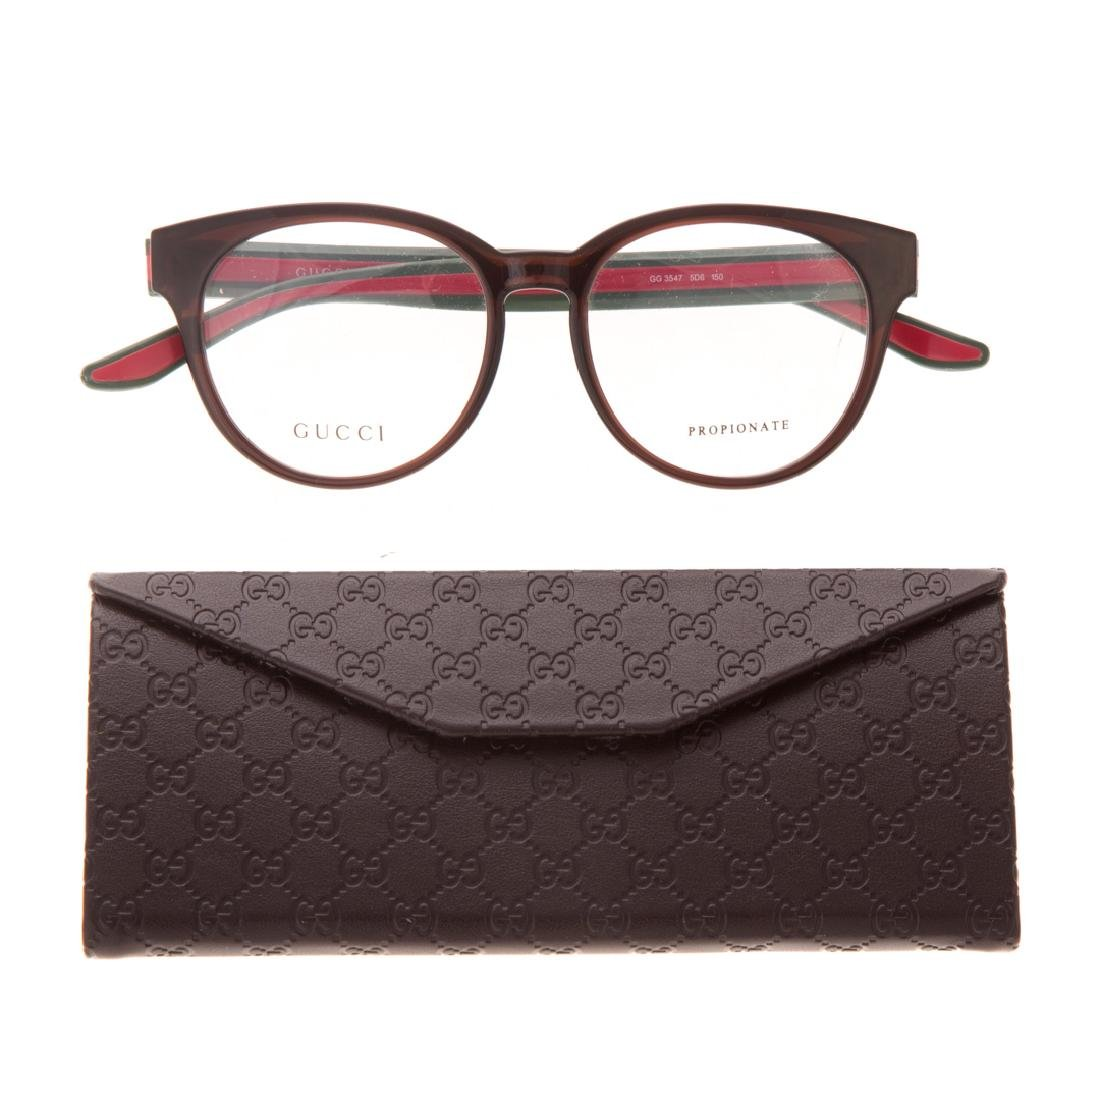 A Pair of Gucci Glasses NWT